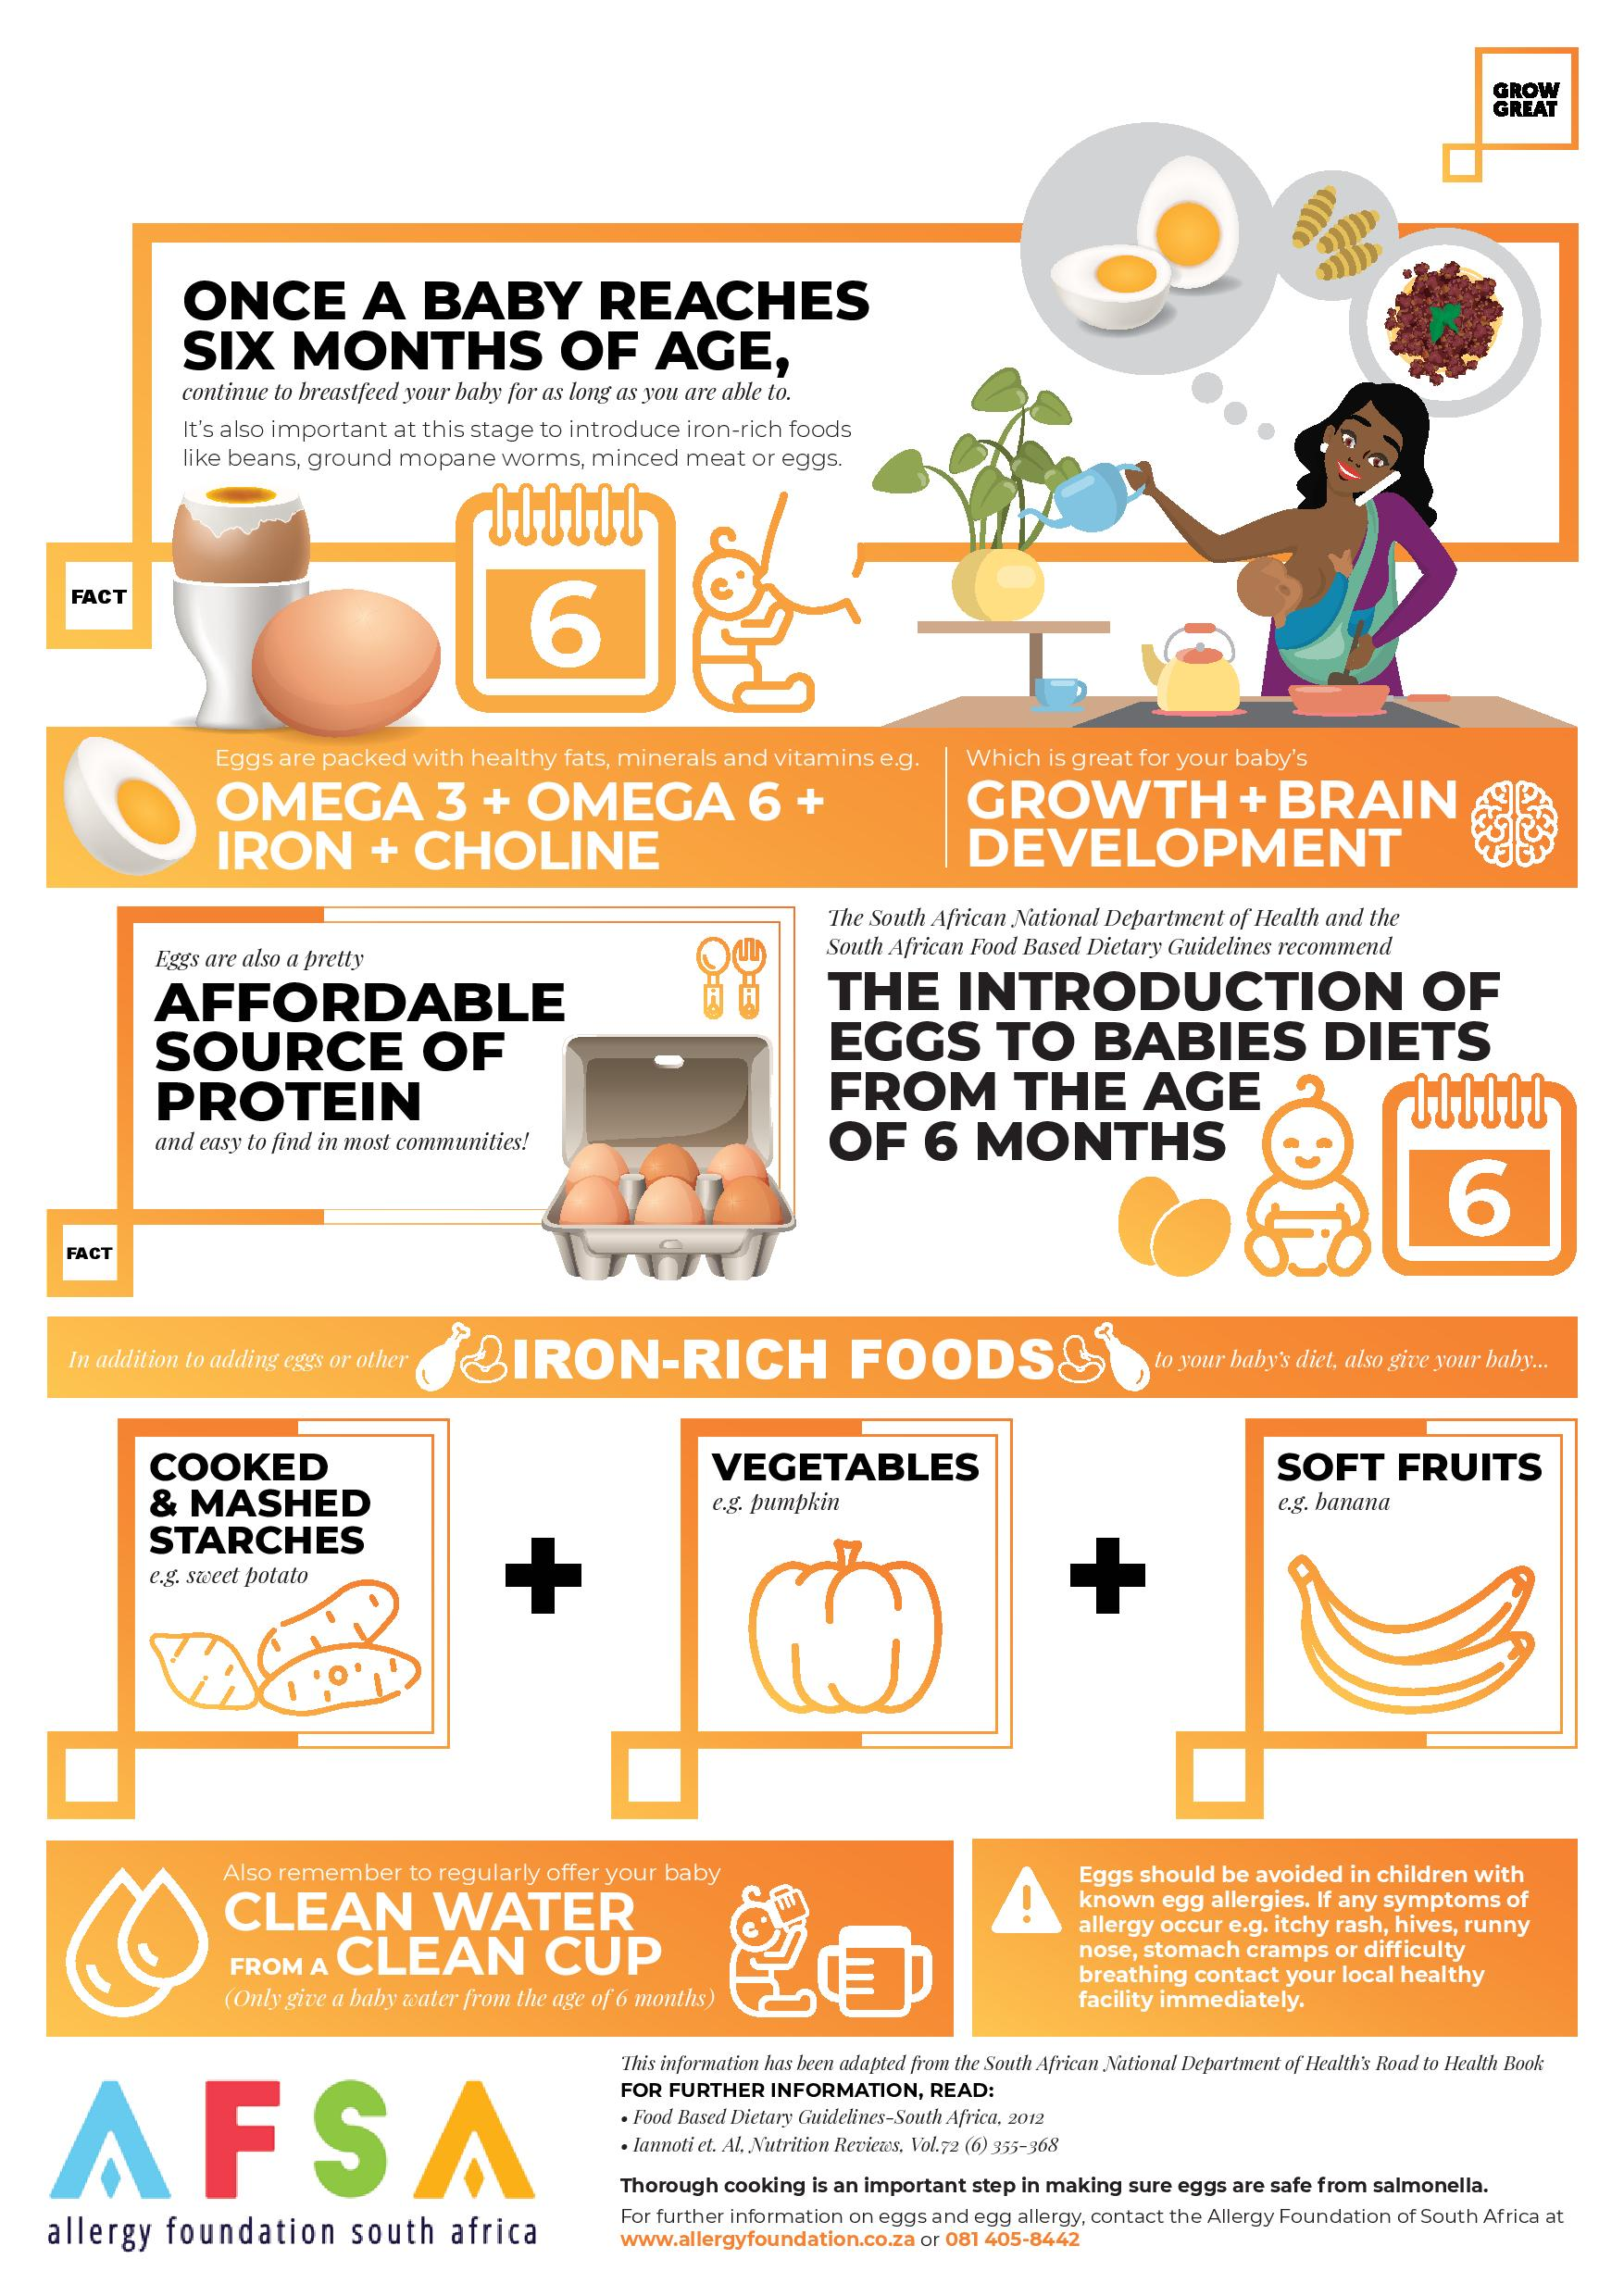 GrowGreat_Egg_Infographic_V07s-page-001